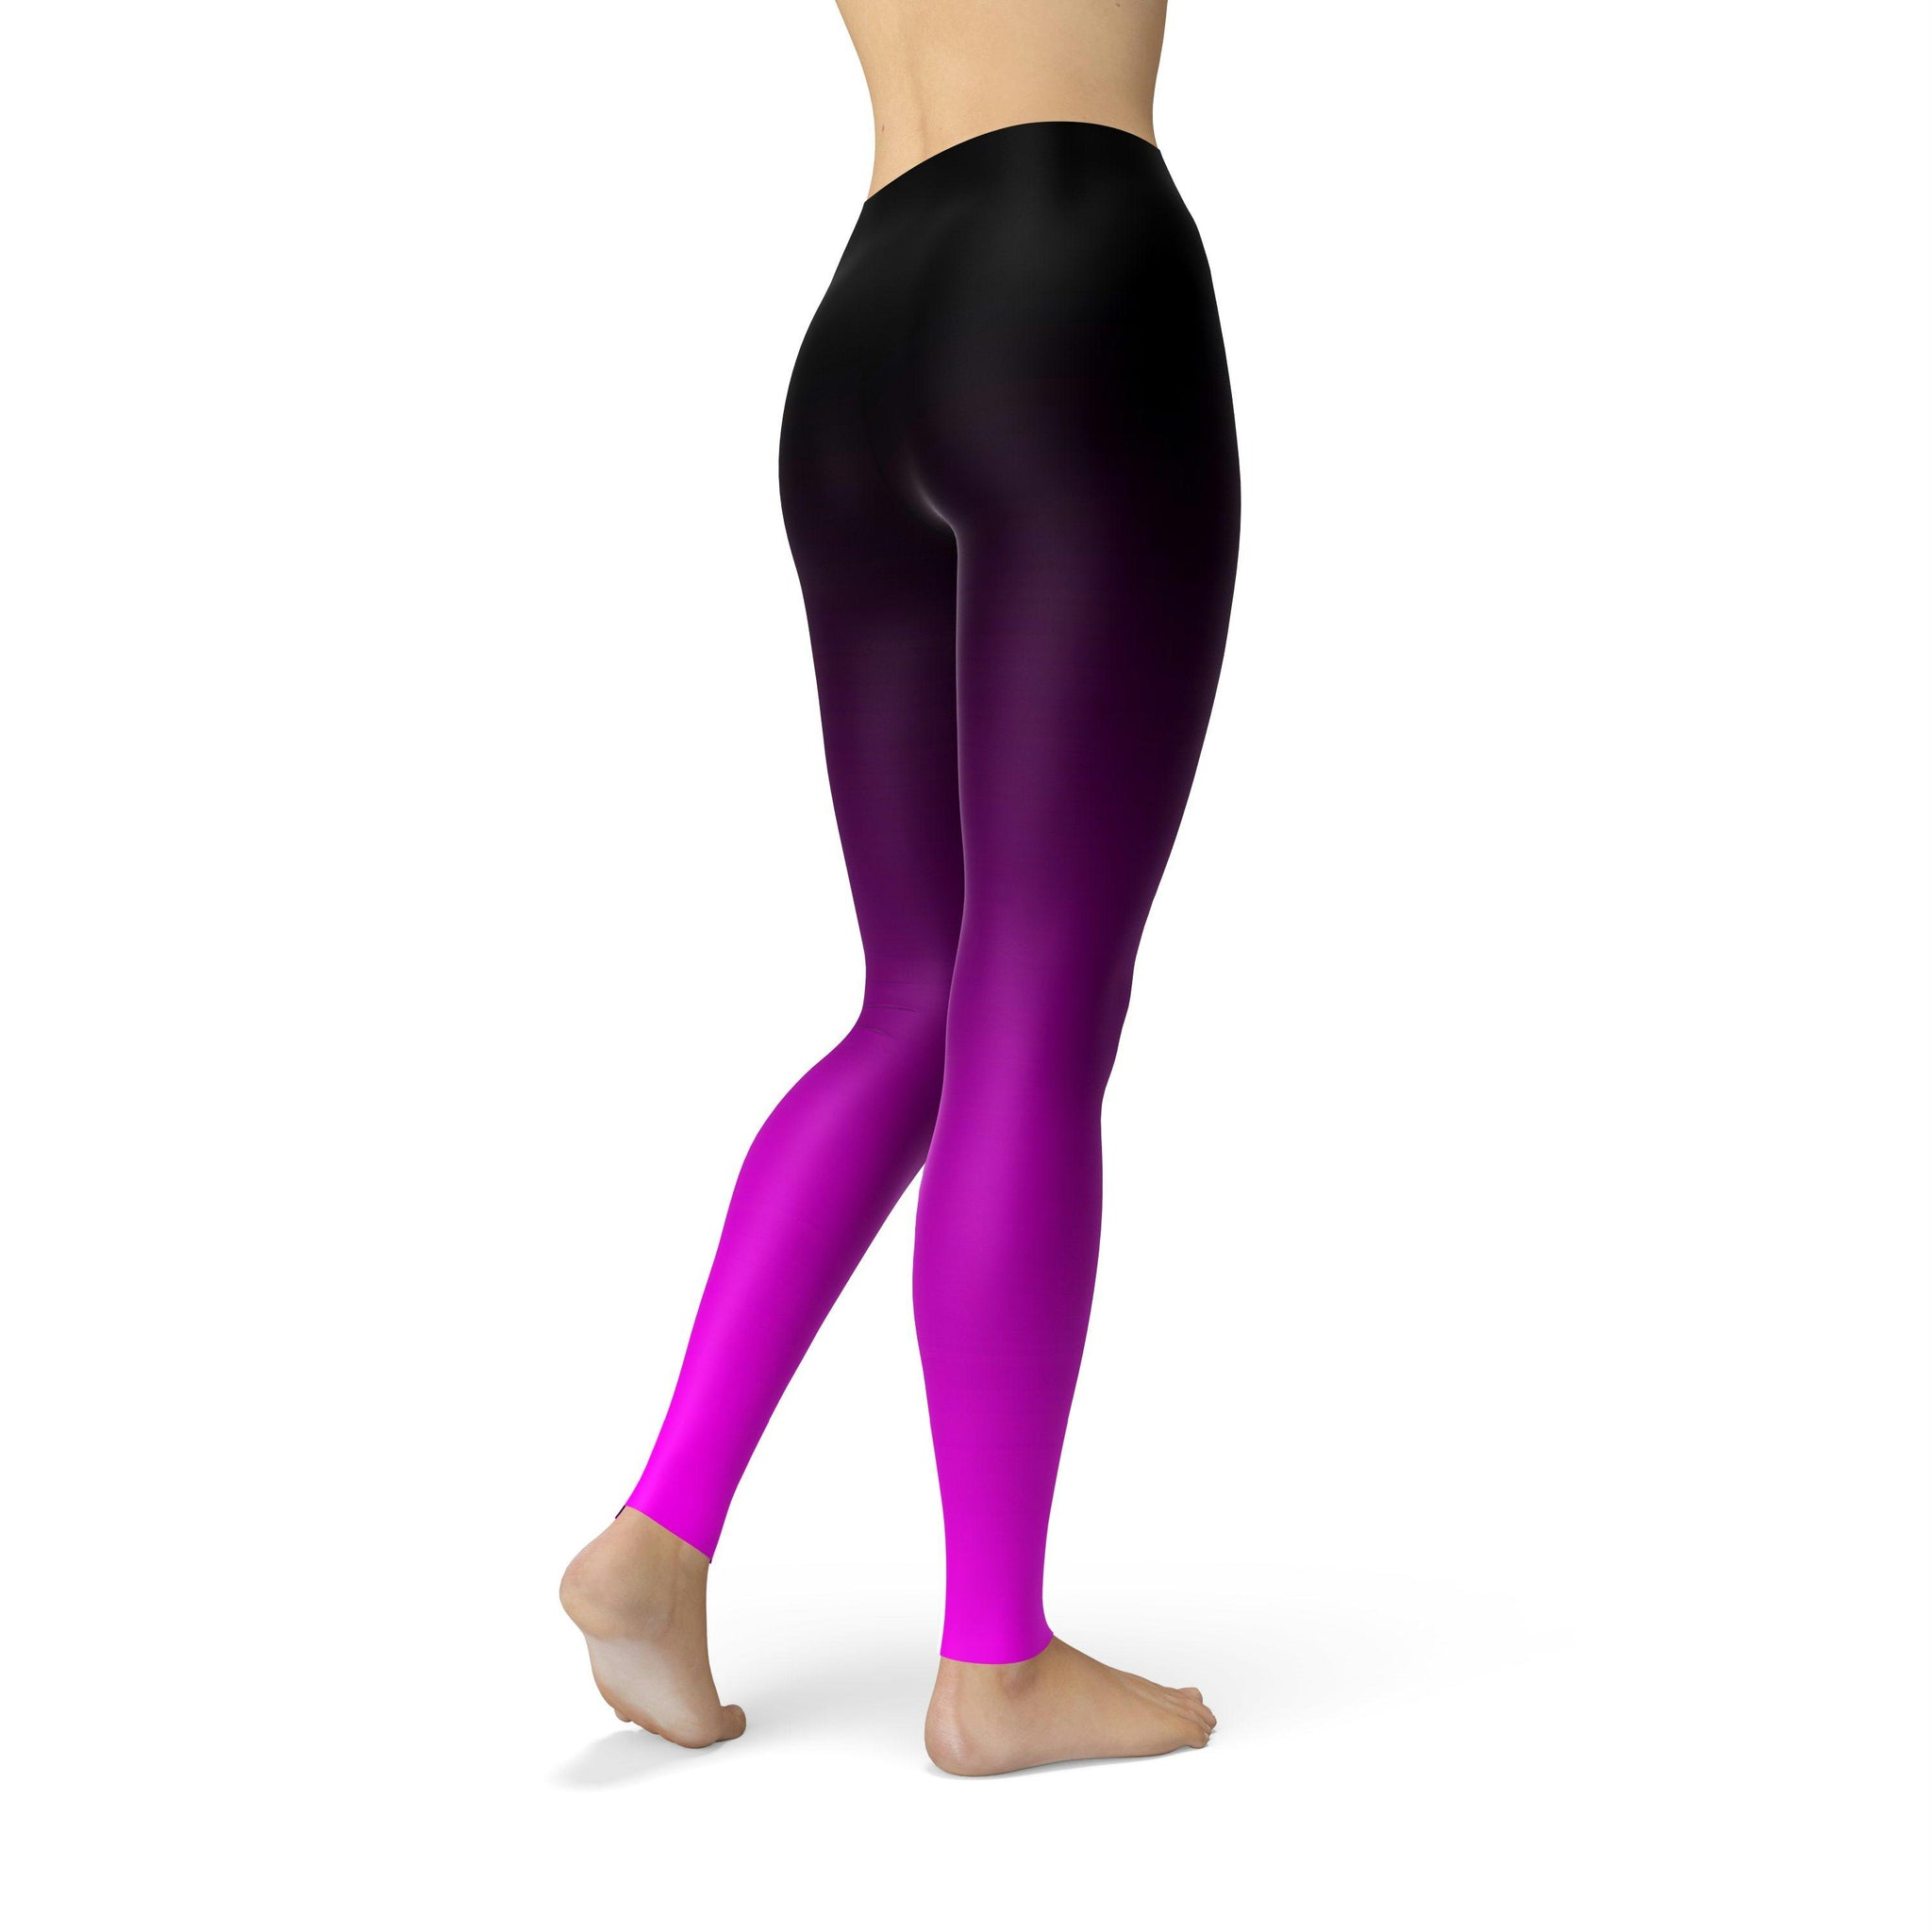 Gentle High-Waist Sangria Fusion Legging